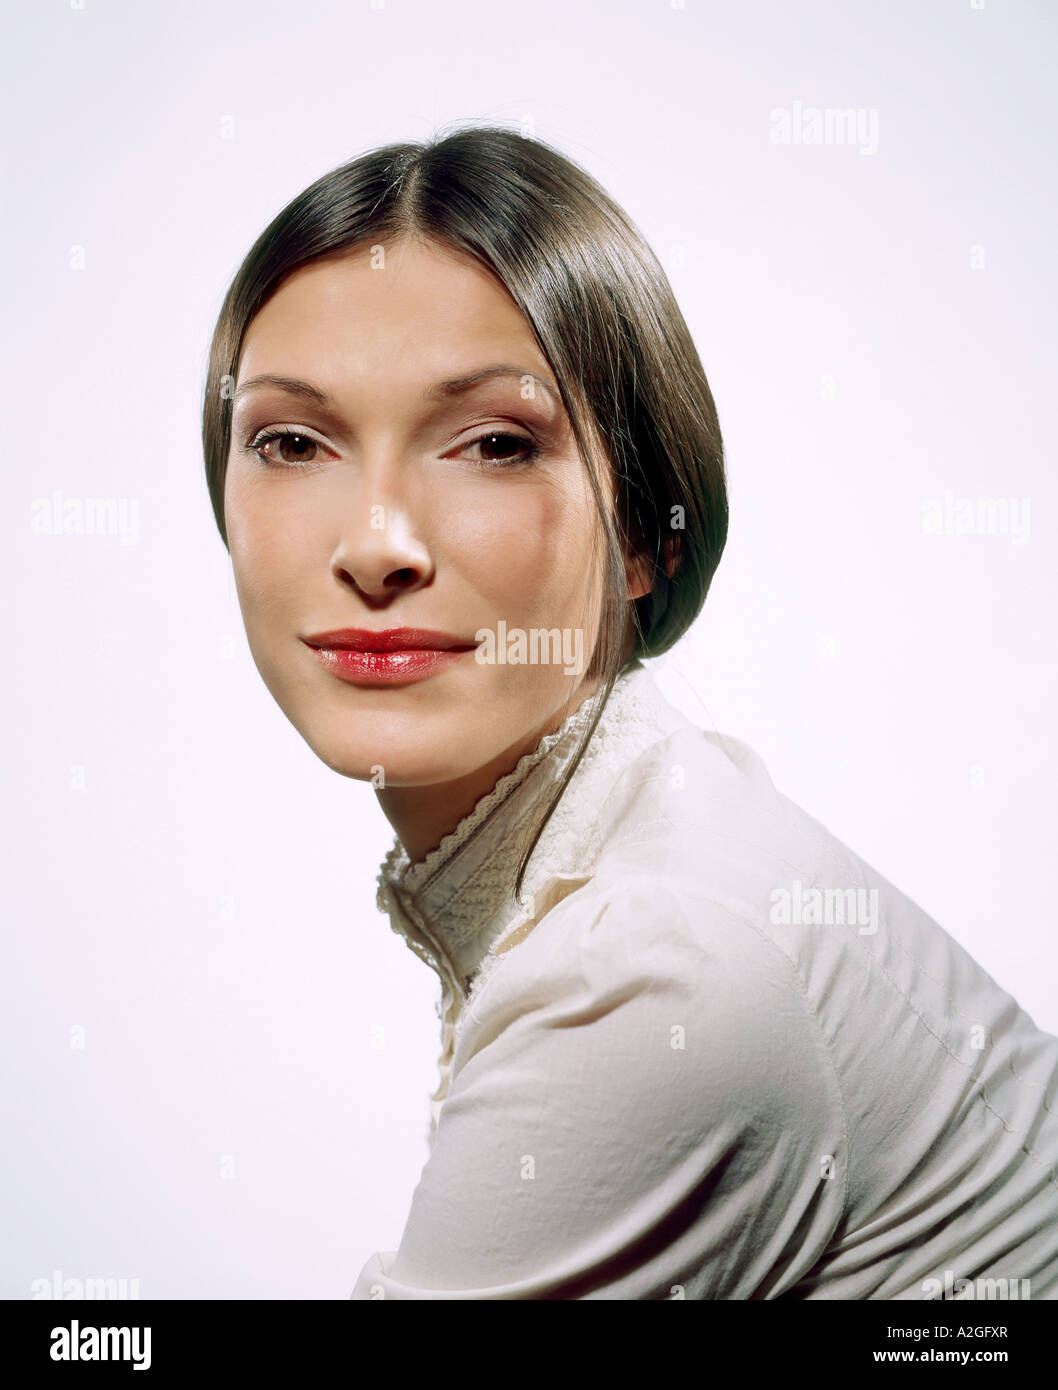 Woman Wisp Of Hair High Resolution Stock Photography and Images